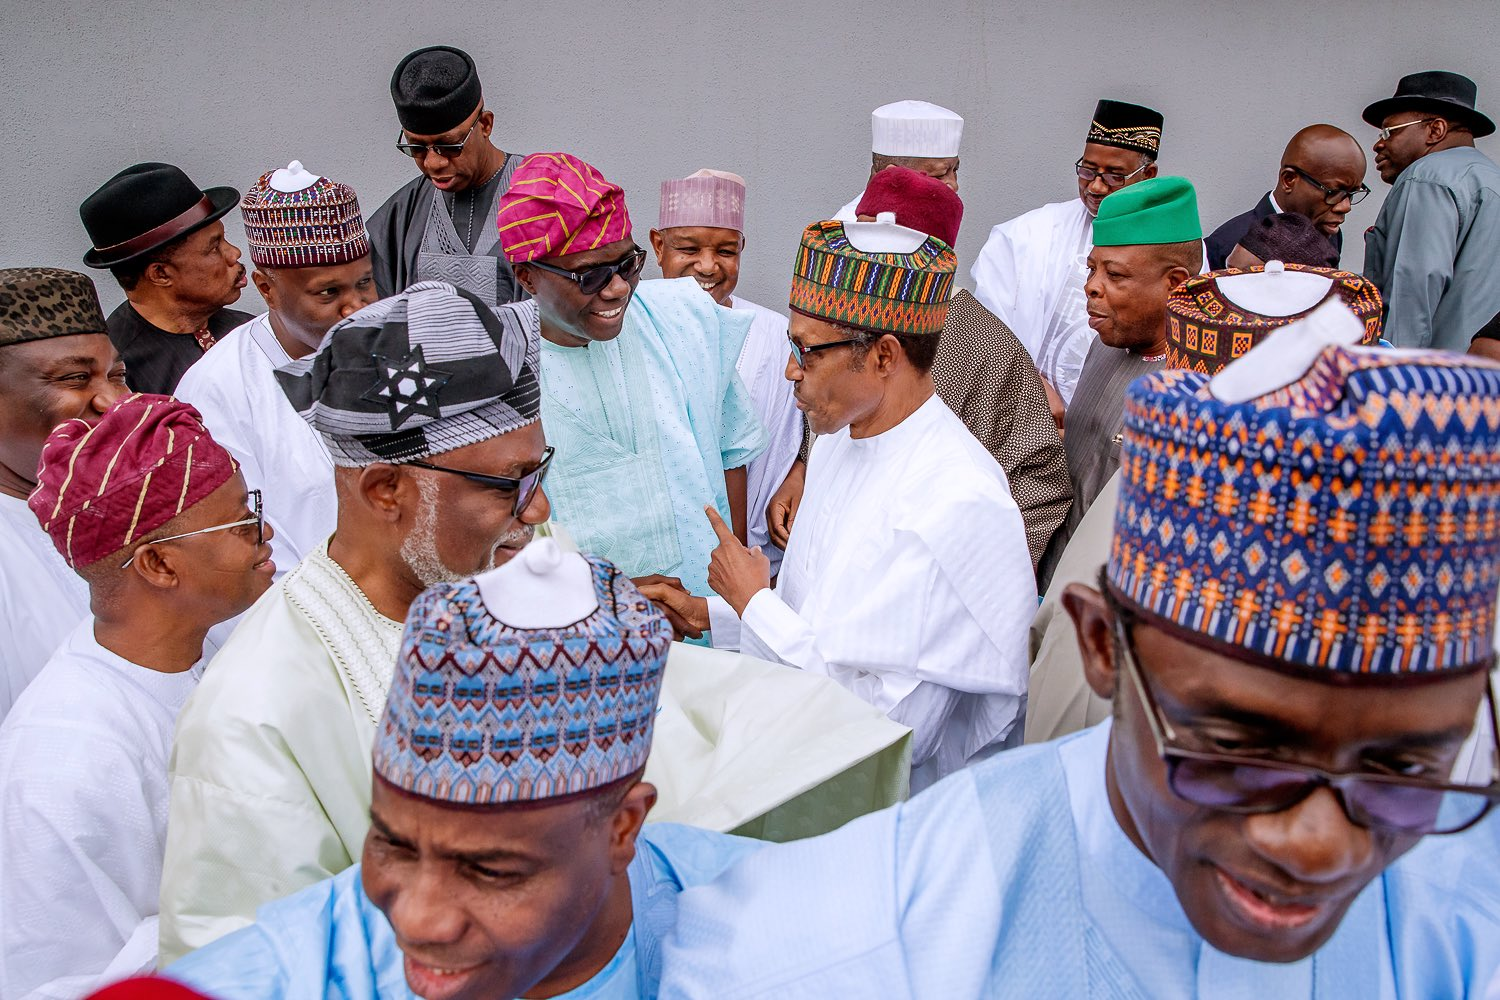 3 IMG 20190607 160437 - Spot your governor!!! Buhari meets all 36 states' governors in Abuja